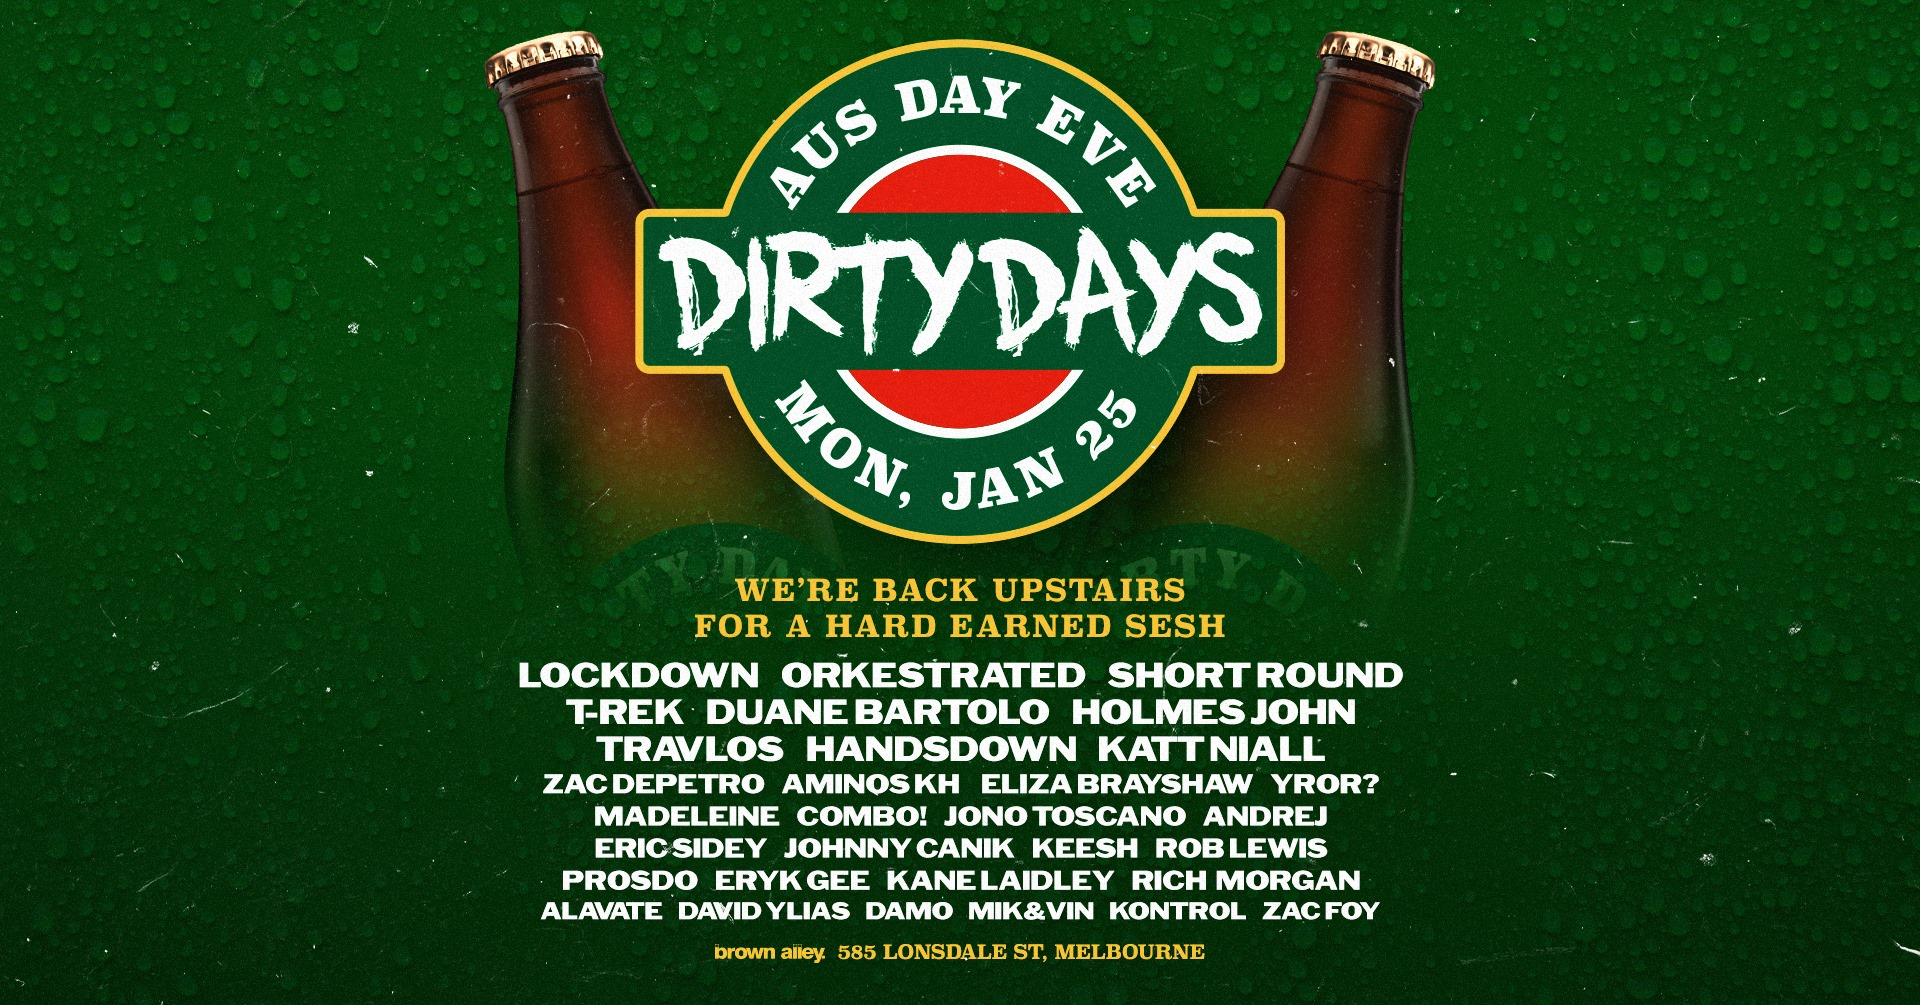 Dirty Days - Aus Day Eve